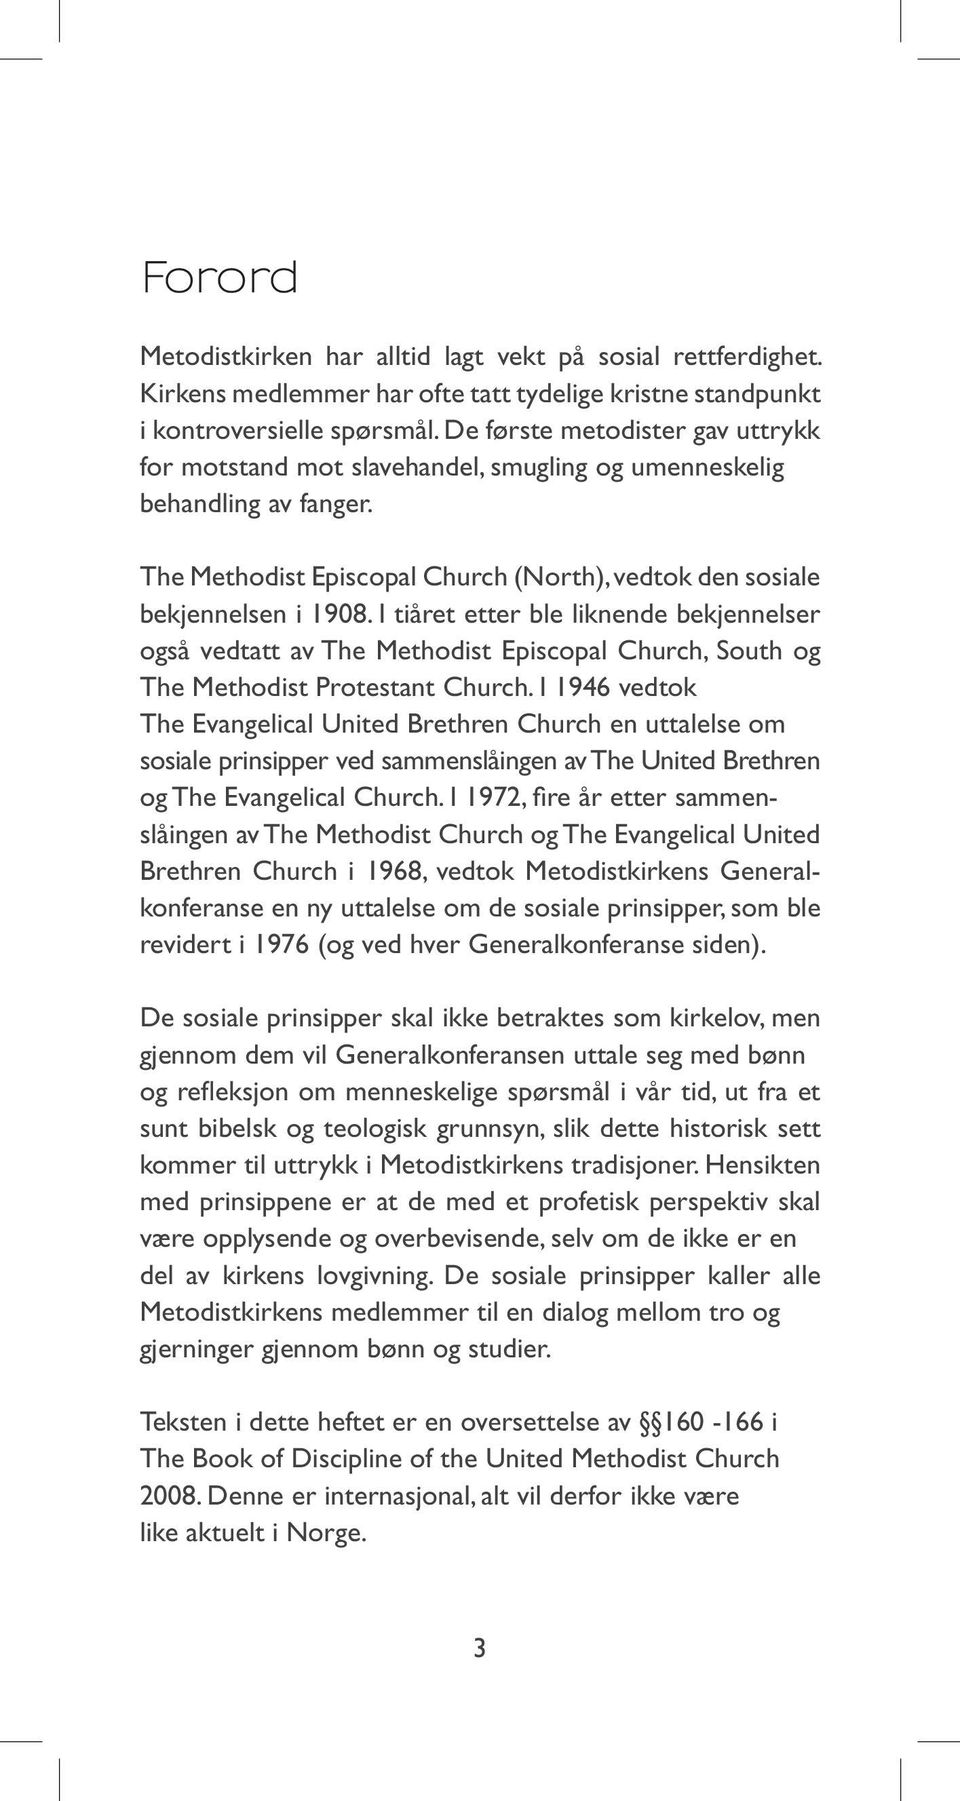 I tiåret etter ble liknende bekjennelser også vedtatt av The Methodist Episcopal Church, South og The Methodist Protestant Church.